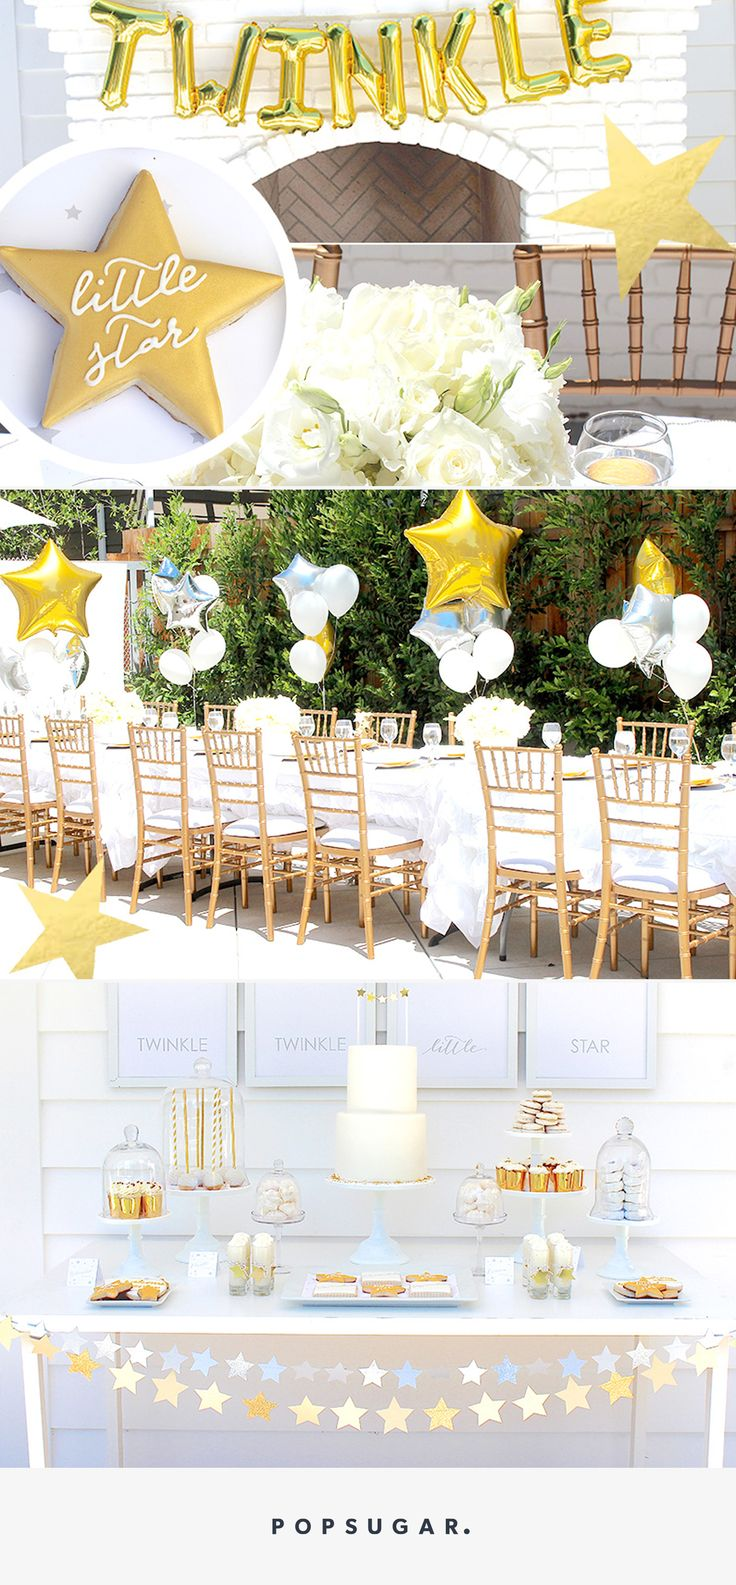 Hosting a baby shower and need some food ideas look no further since - This Twinkle Twinkle Baby Shower Is The Sweetest Way To Celebrate Mama And Baby